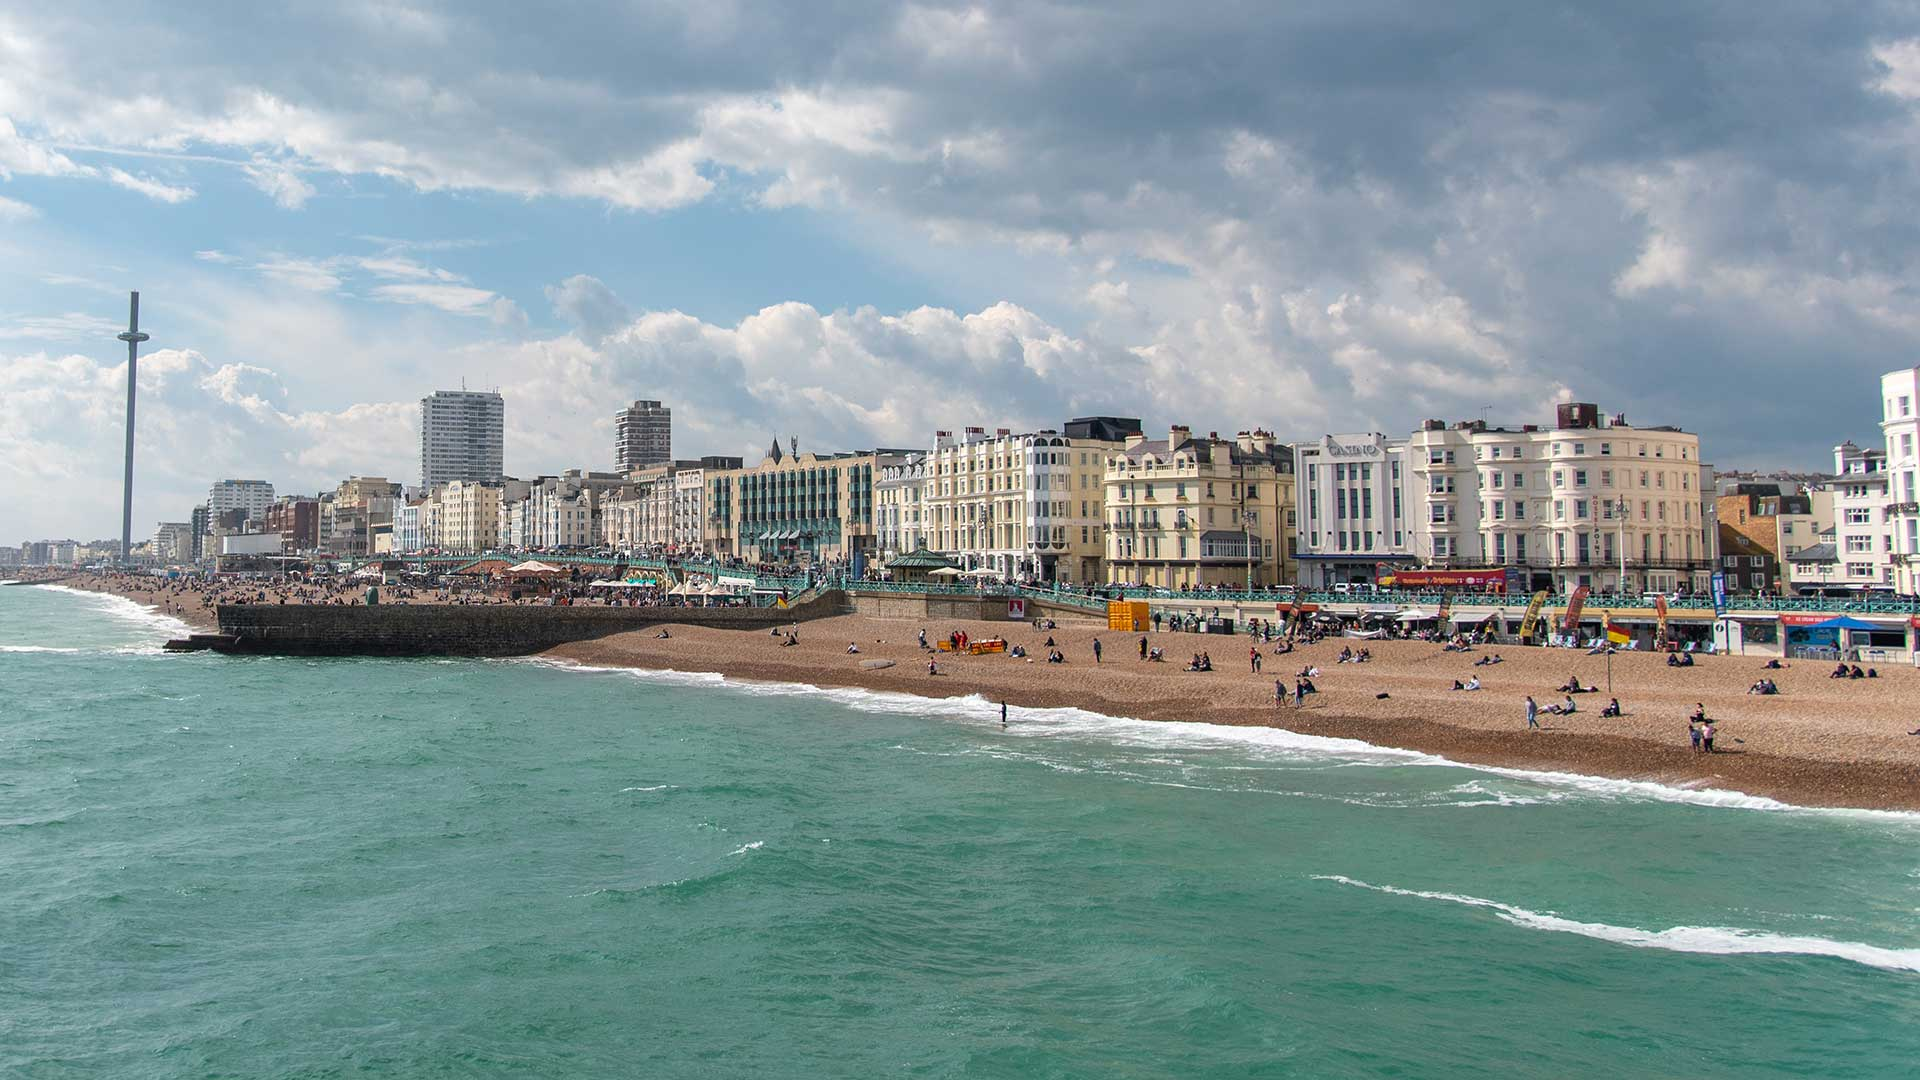 Brighton beach ib the sunshine, looking out past the i360